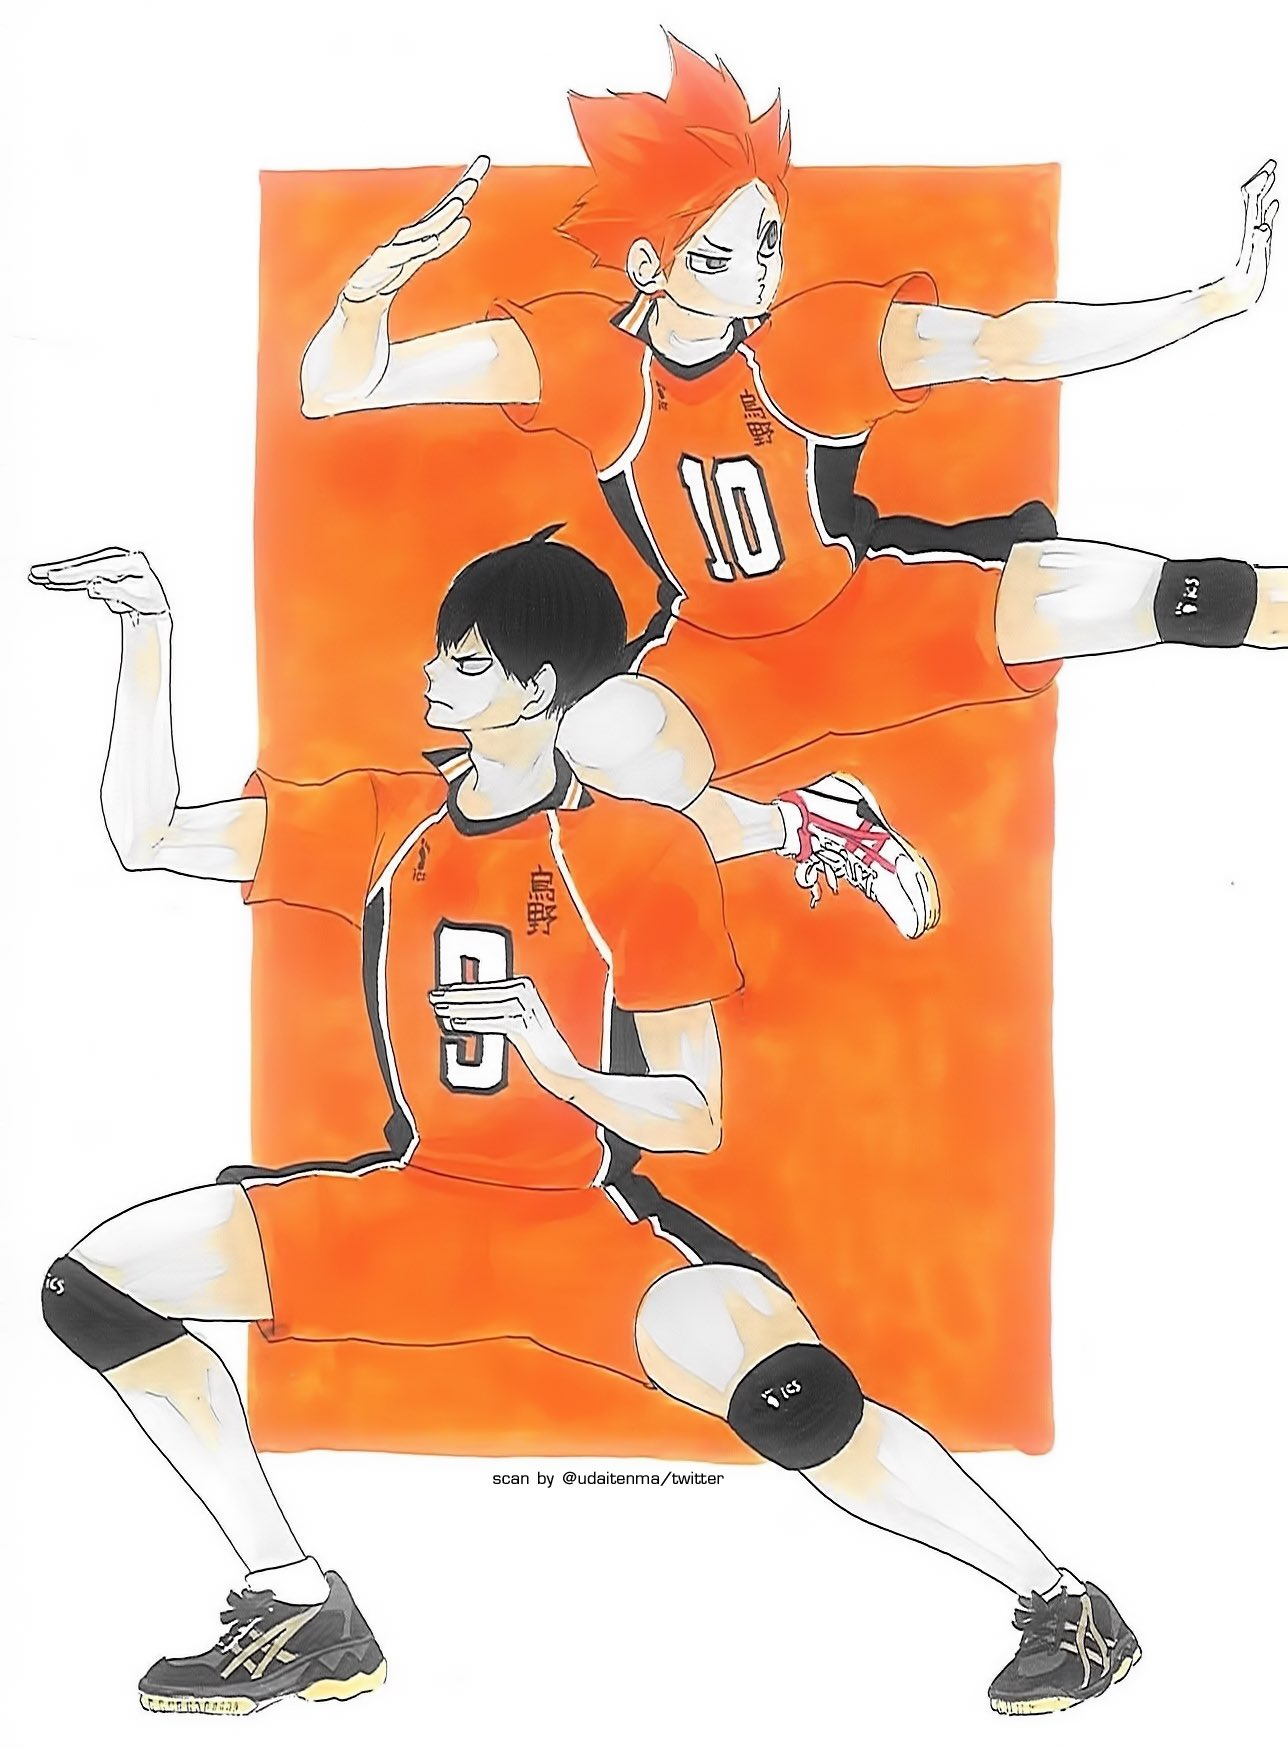 Omi On Twitter My Scan Haikyuu Color Illustrations Haikara Book Hqcolorscan Just Kagehina Being Chaotic As Always It S Nothing New Https T Co Gaqhkq99ki